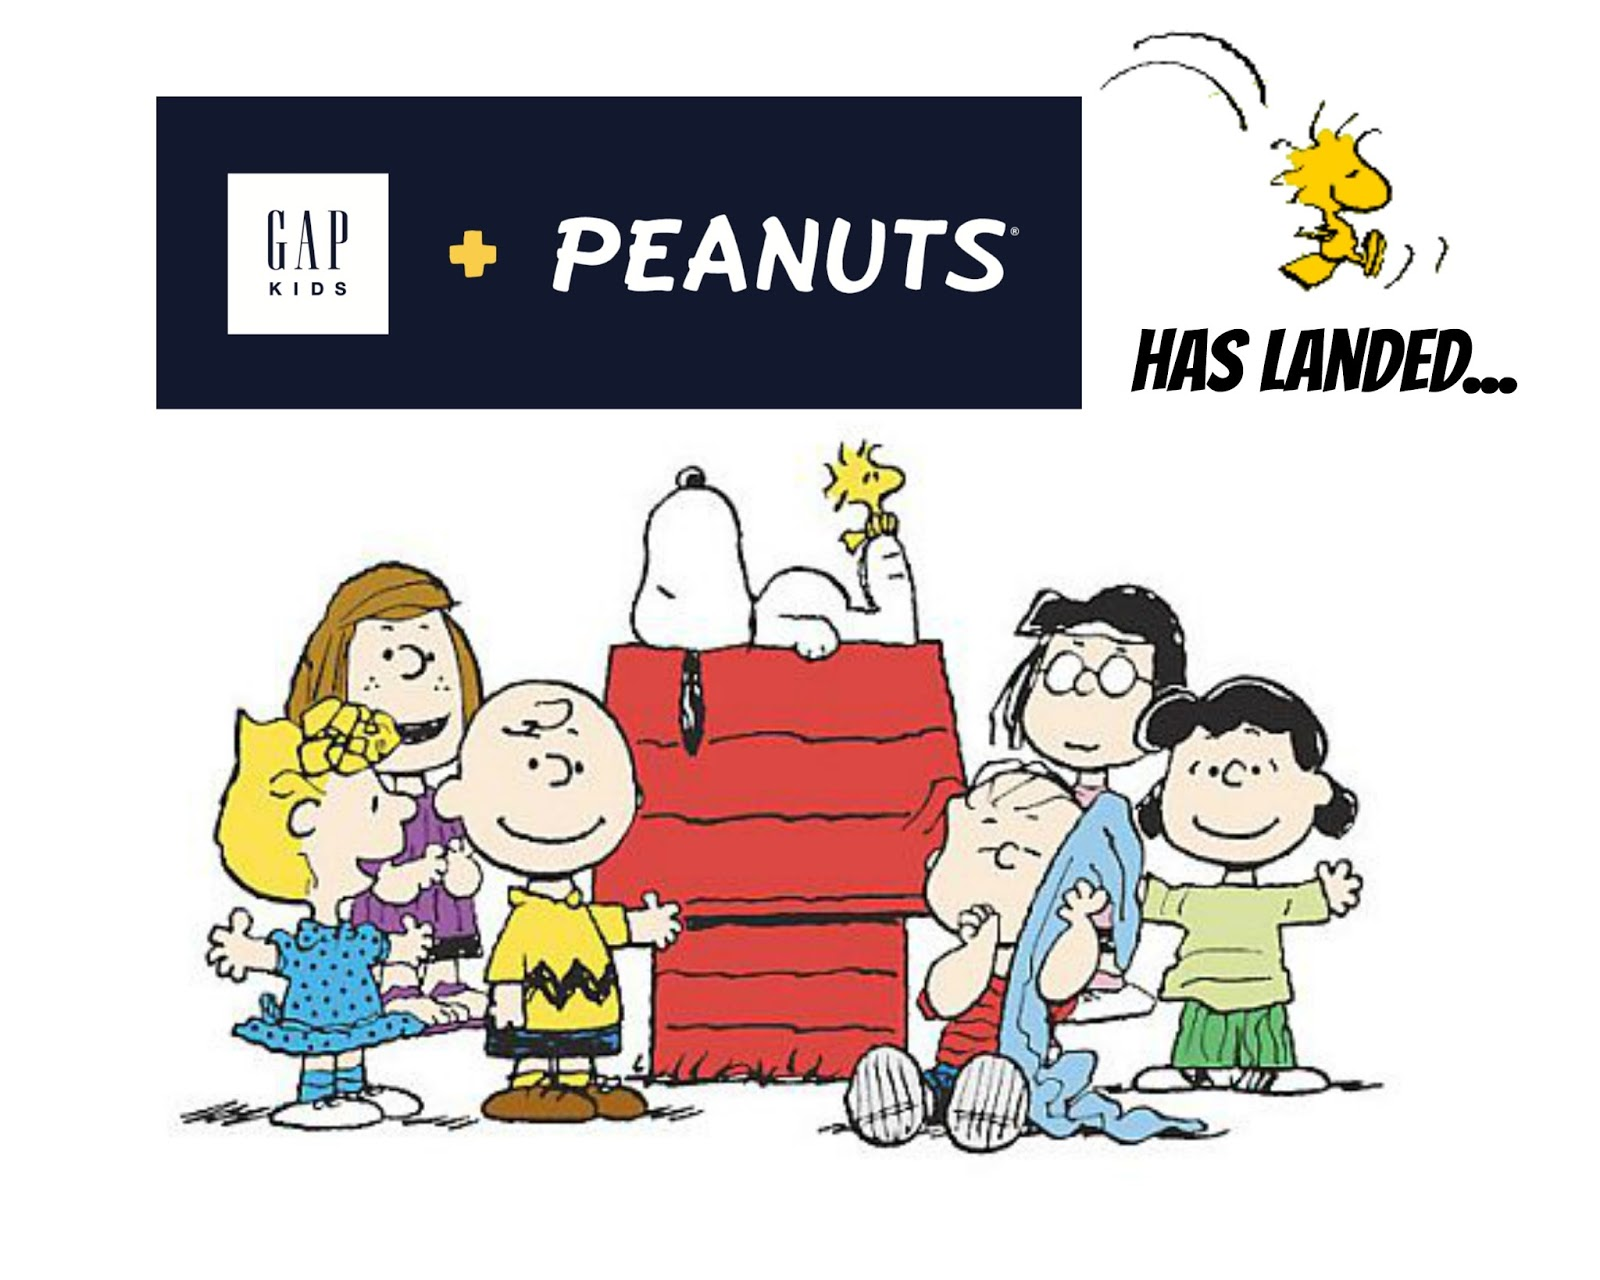 V. I. BUYS: The Gap + Peanuts collection has finally arrived, peanuts, gap, limited editions, coloration, ew collection, new launch, snoopy, charlie brown,a  charlie brown Christmas, Christmas fashion, kids style, shopping, new collection, gap, kids, in=atge, retro, the peanuts lie, anniversary,